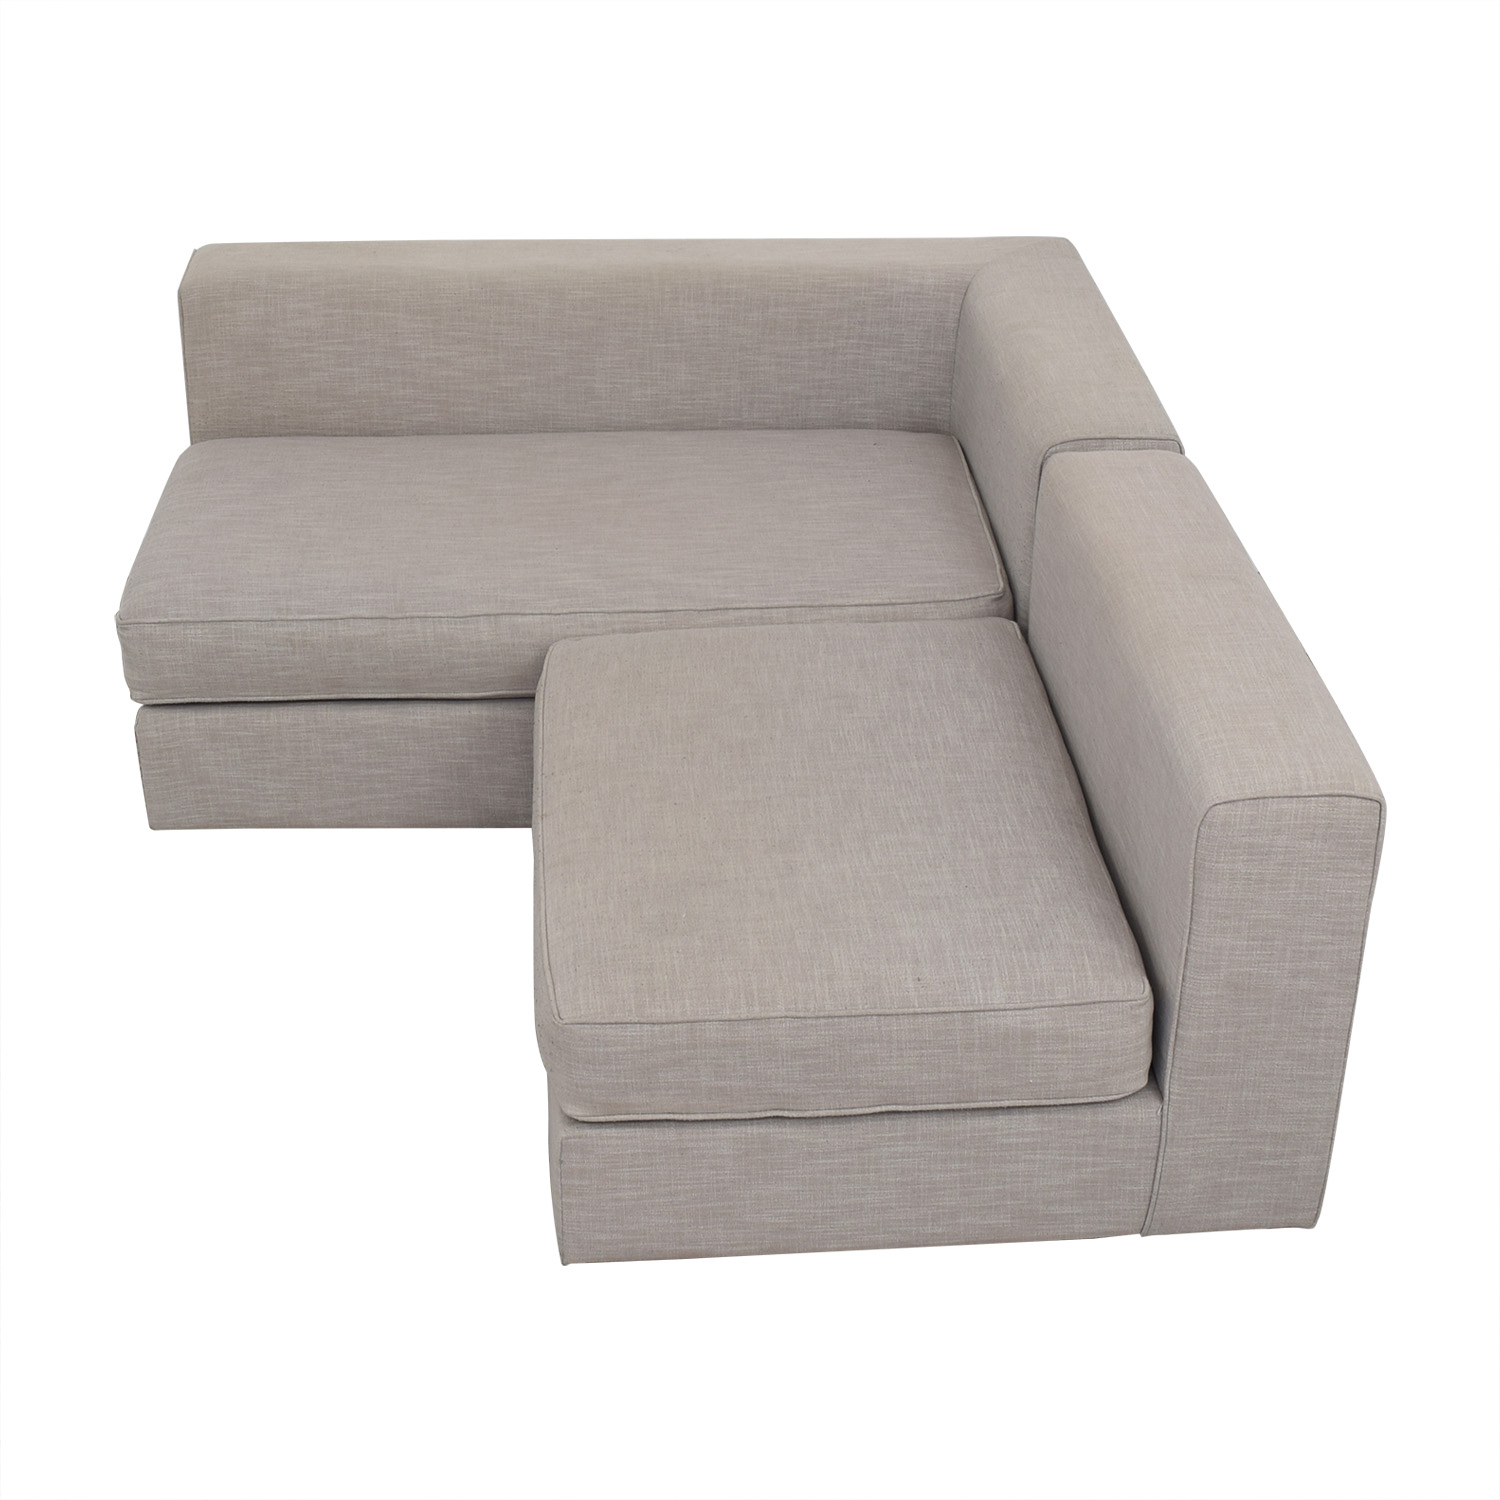 West Elm Urban Sectional Sofa / Sectionals